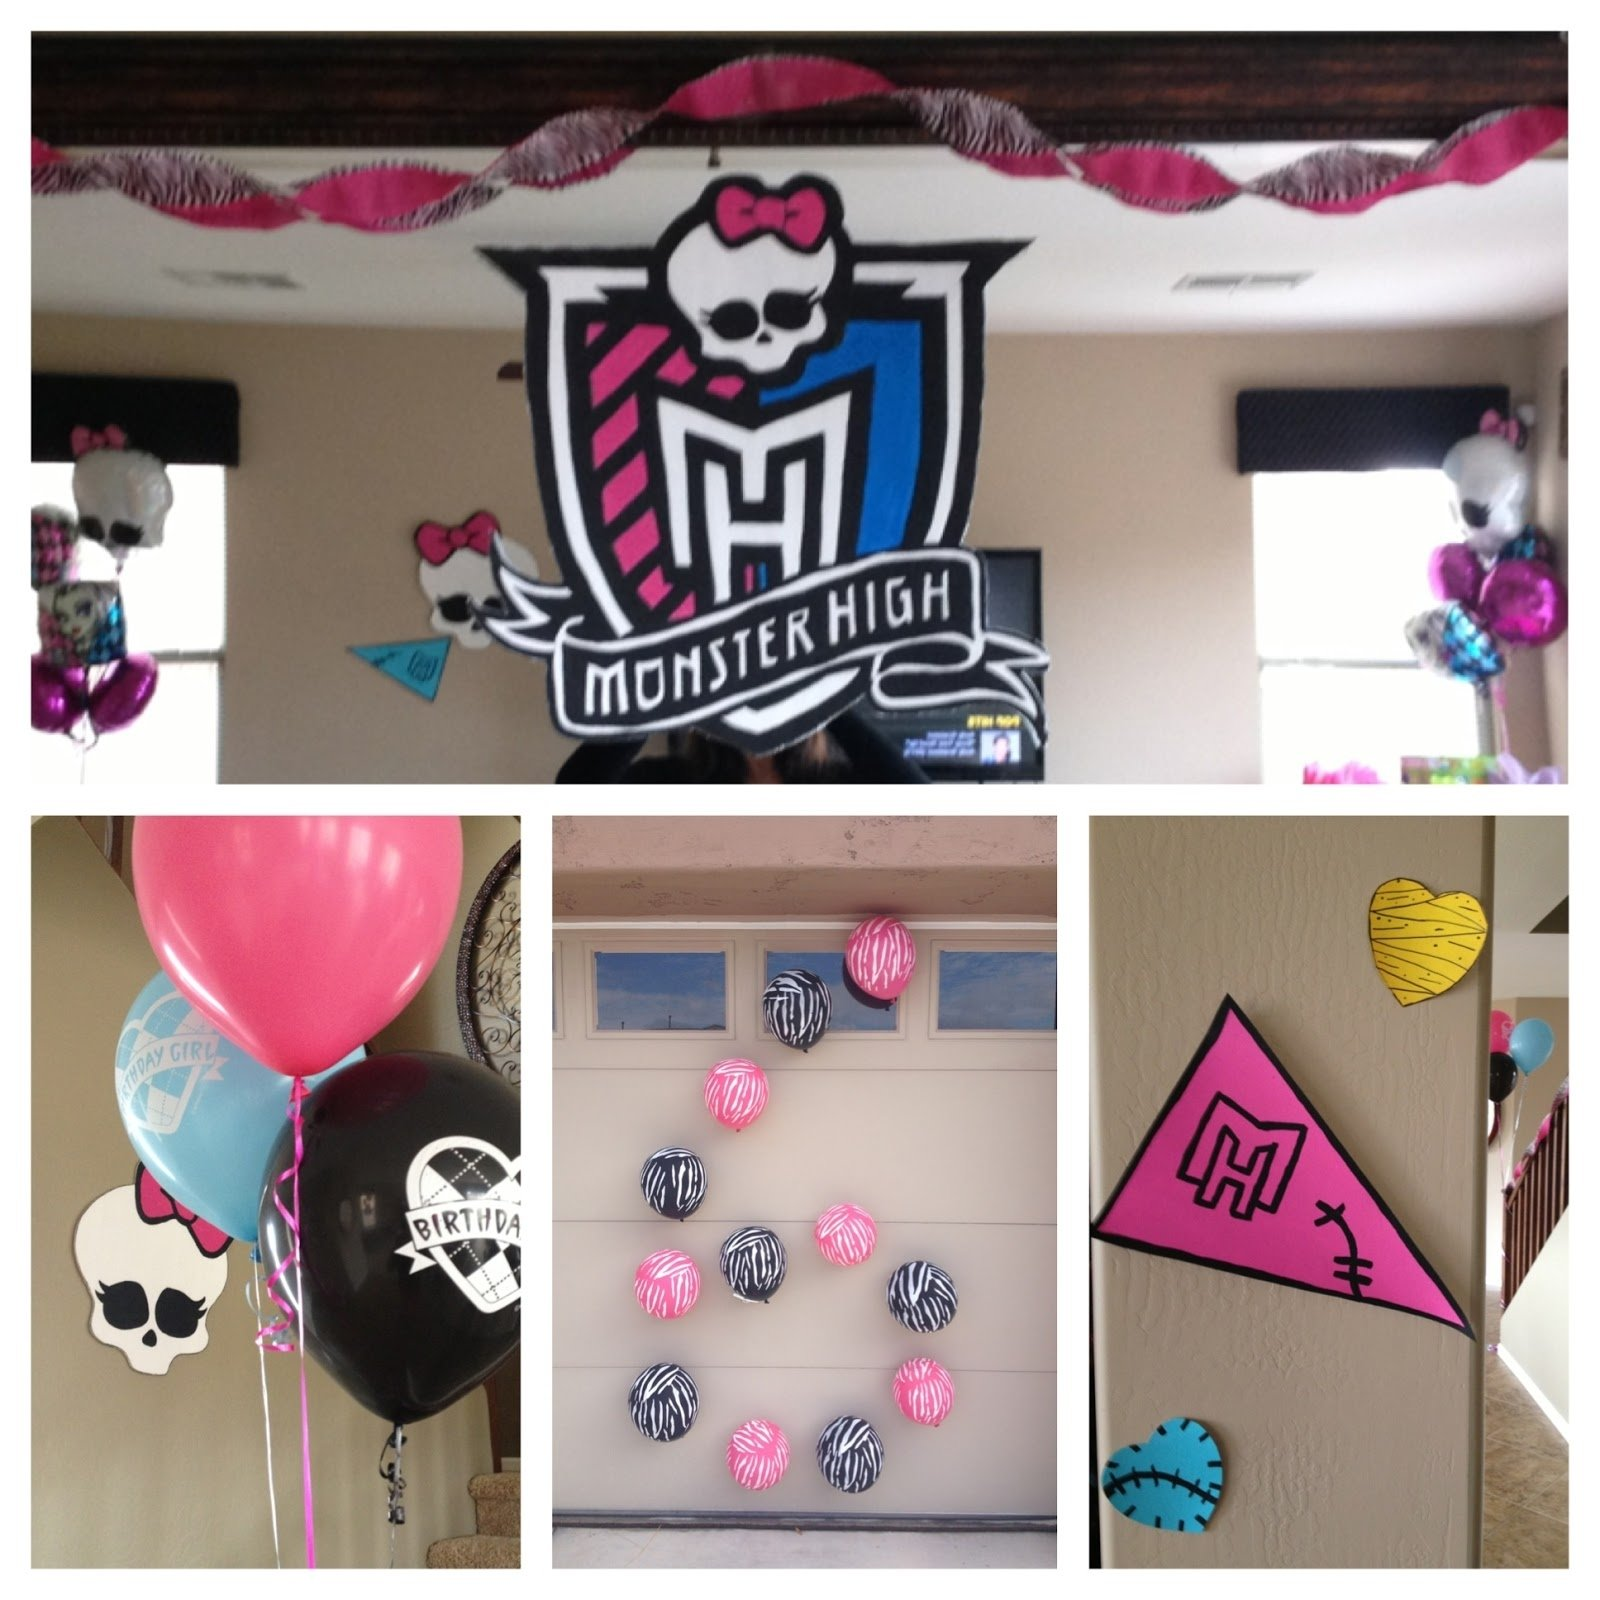 10 Elegant Monster High Birthday Party Game Ideas the busy broad monster high party decorations 2020